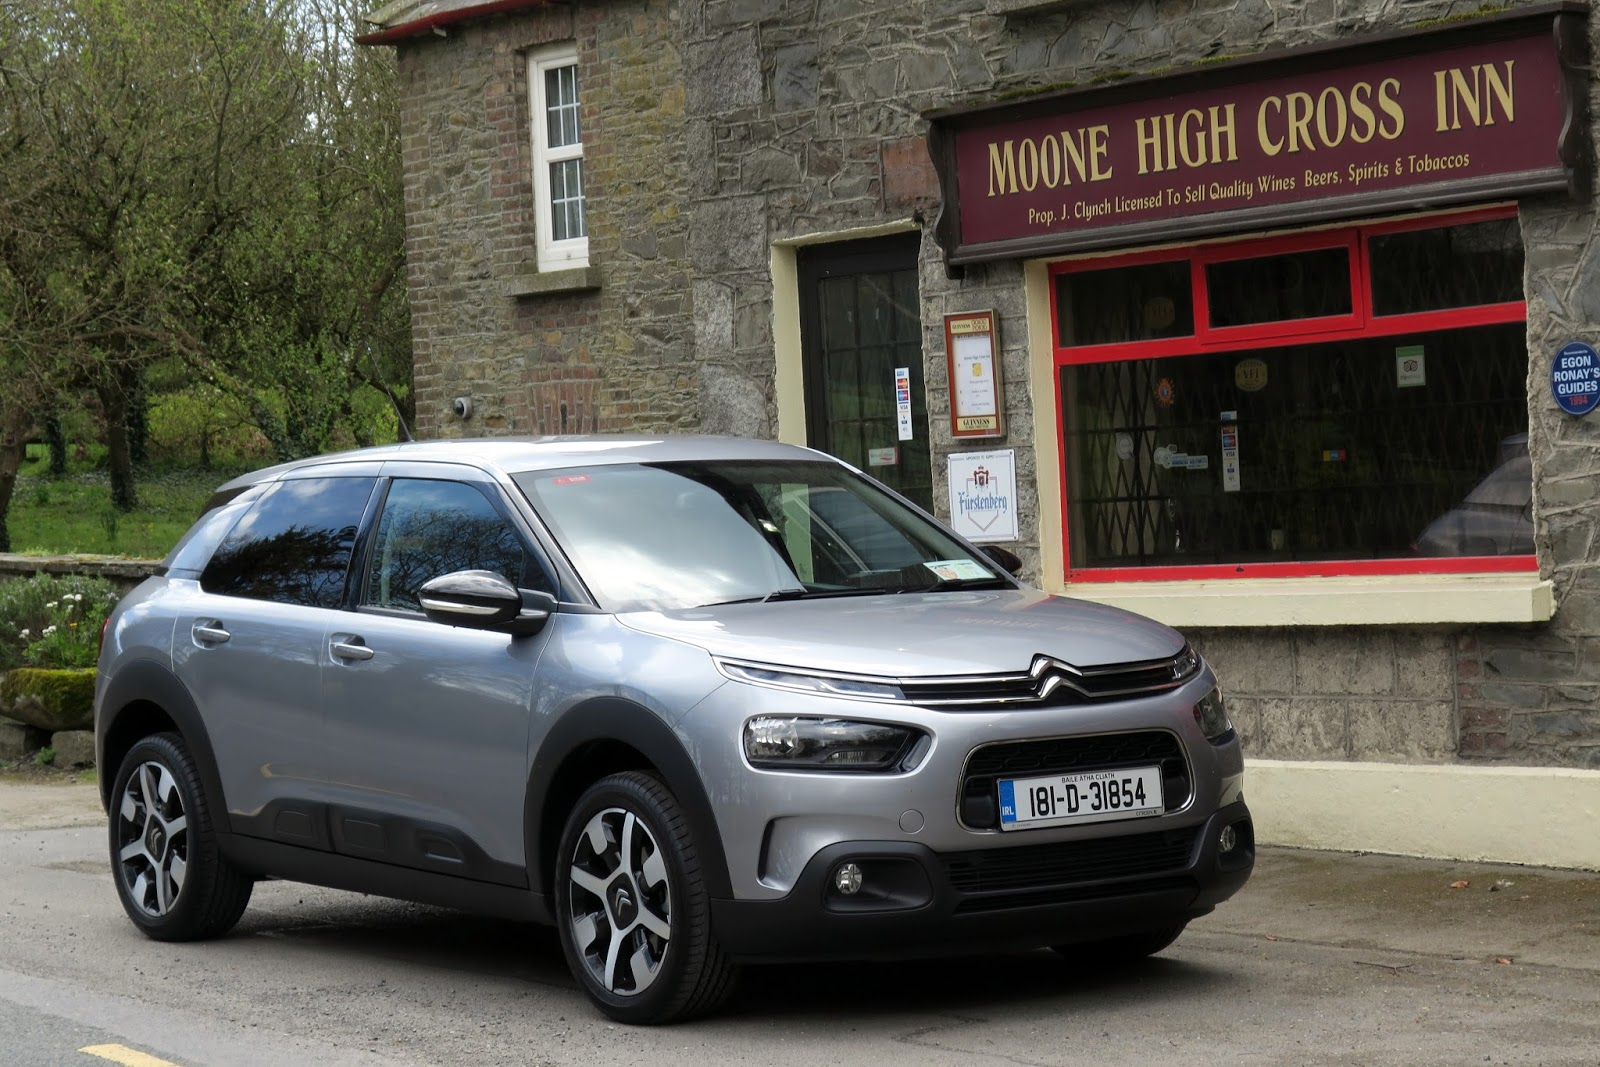 bb03a471c0 The new Citroen C4 Cactus has arrived in Ireland at a starting price of  €19